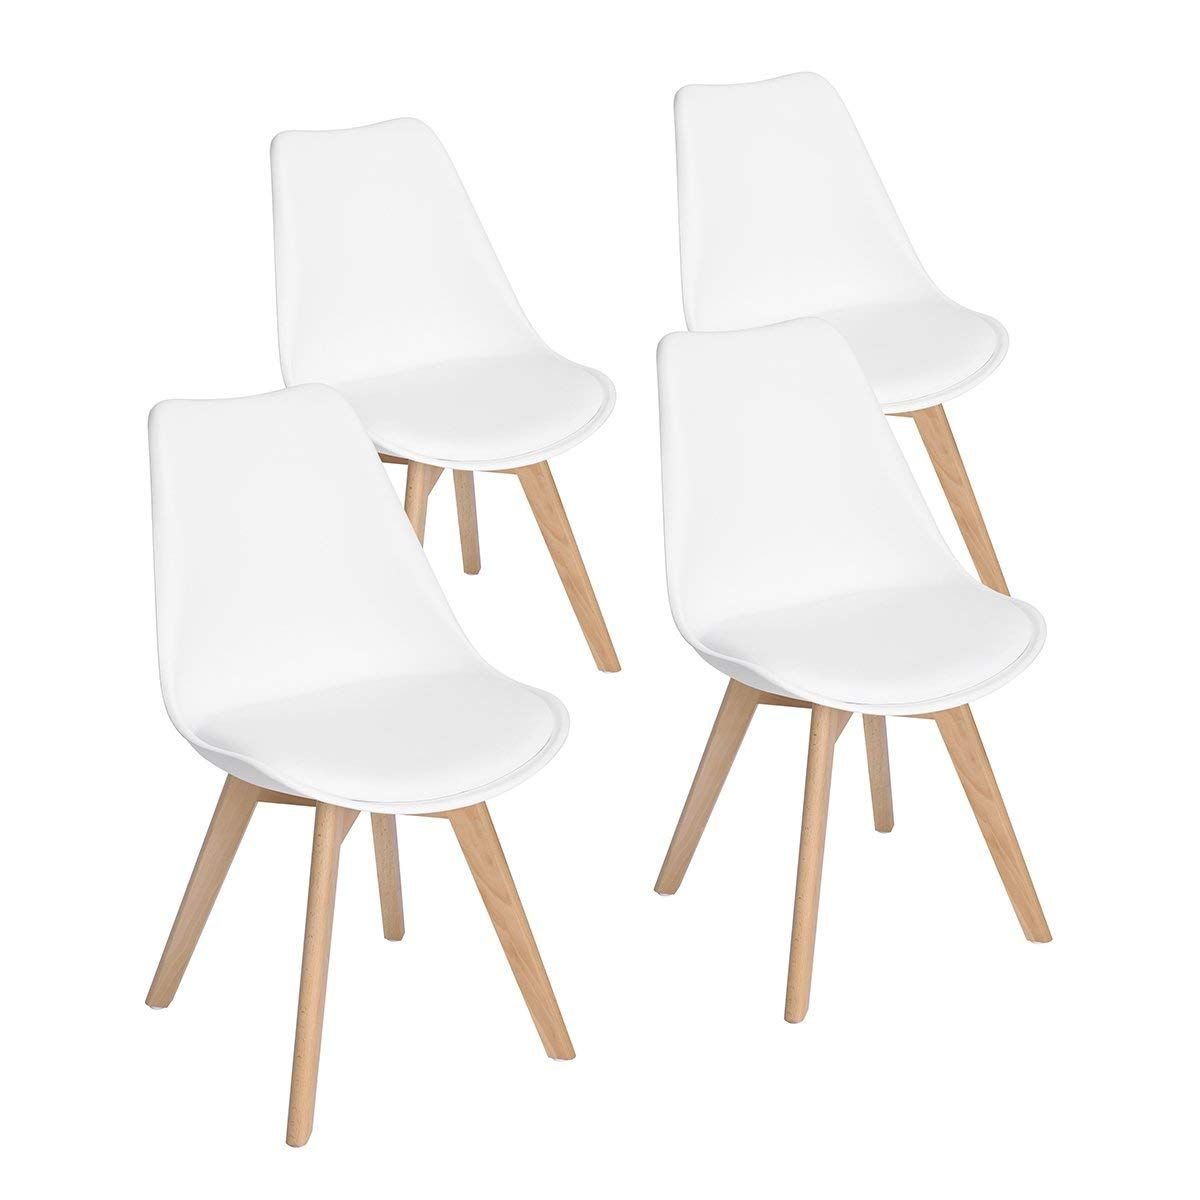 Super Set Of 4 Modern Accent Side Dining Chair Kitchen Chairs Pabps2019 Chair Design Images Pabps2019Com